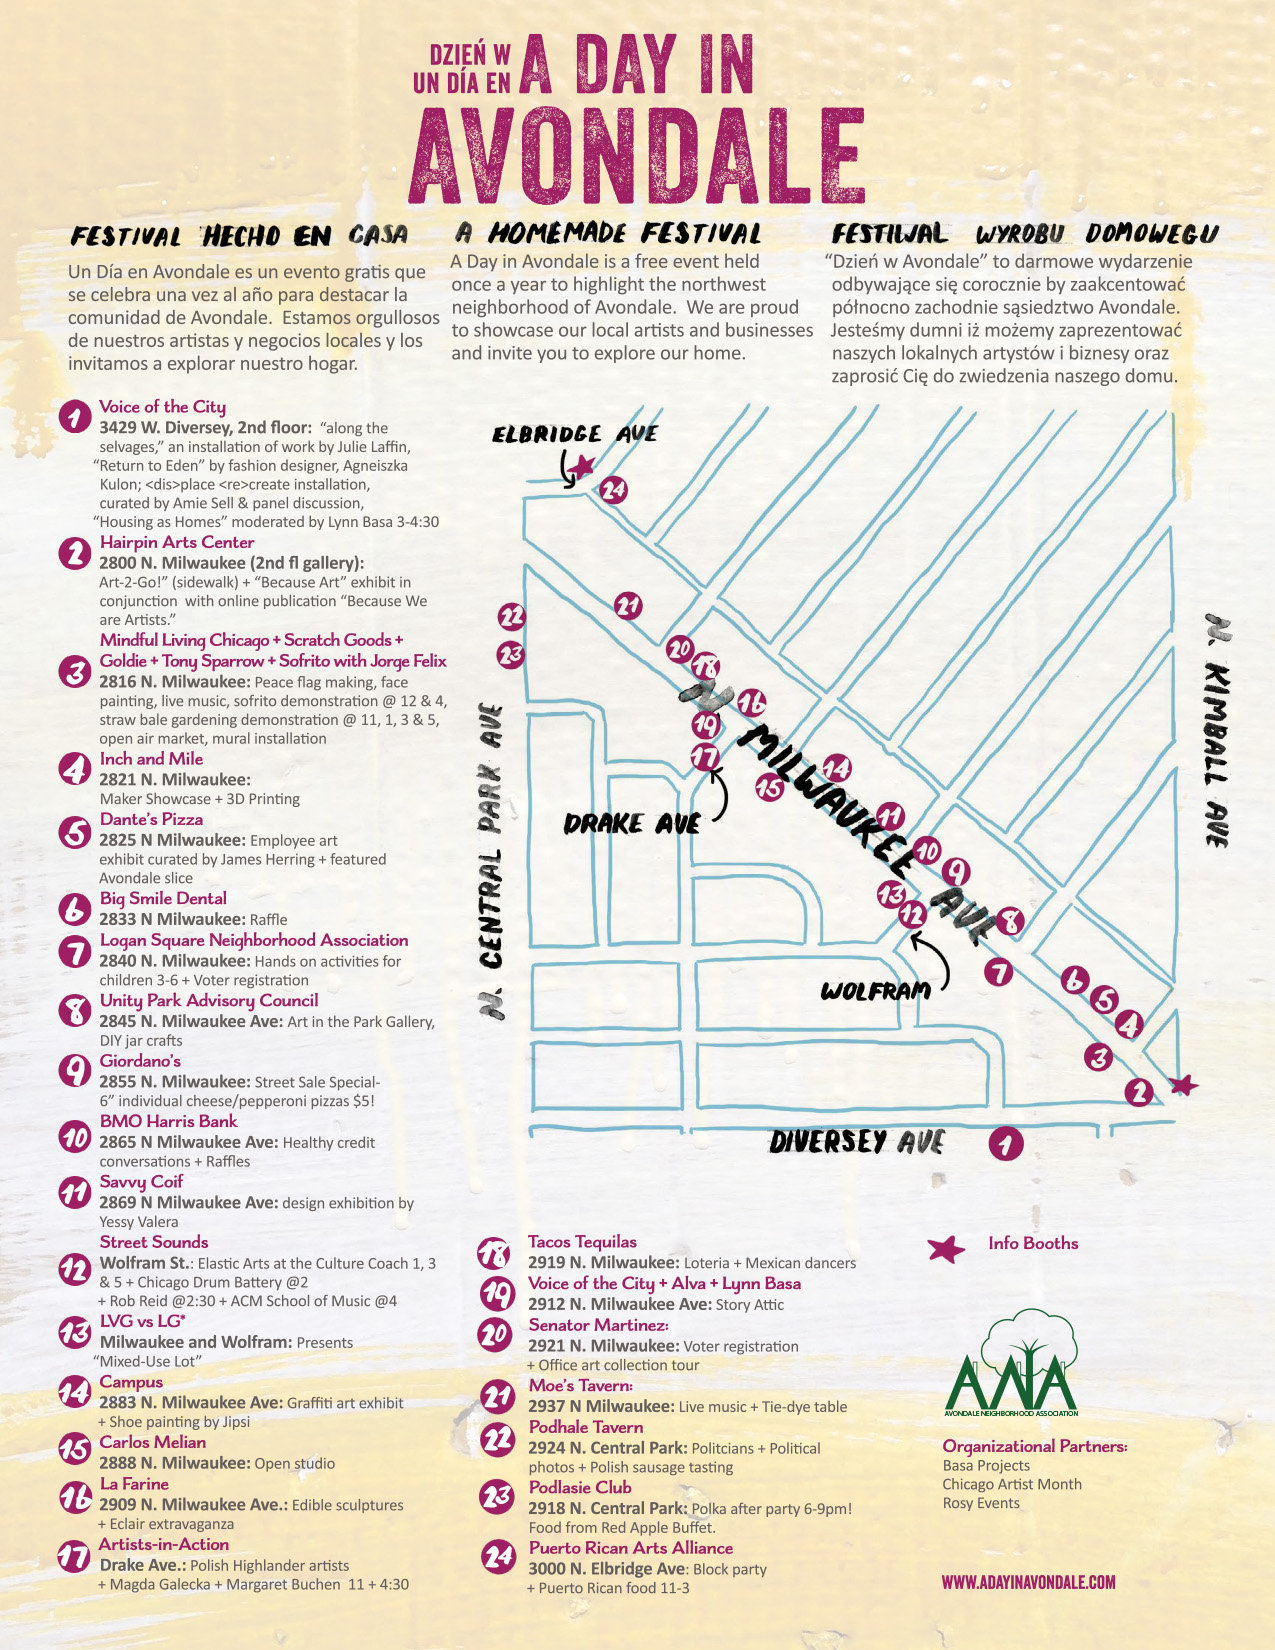 Sept. 27th | A Day in Avondale Map | A Day in Avondale